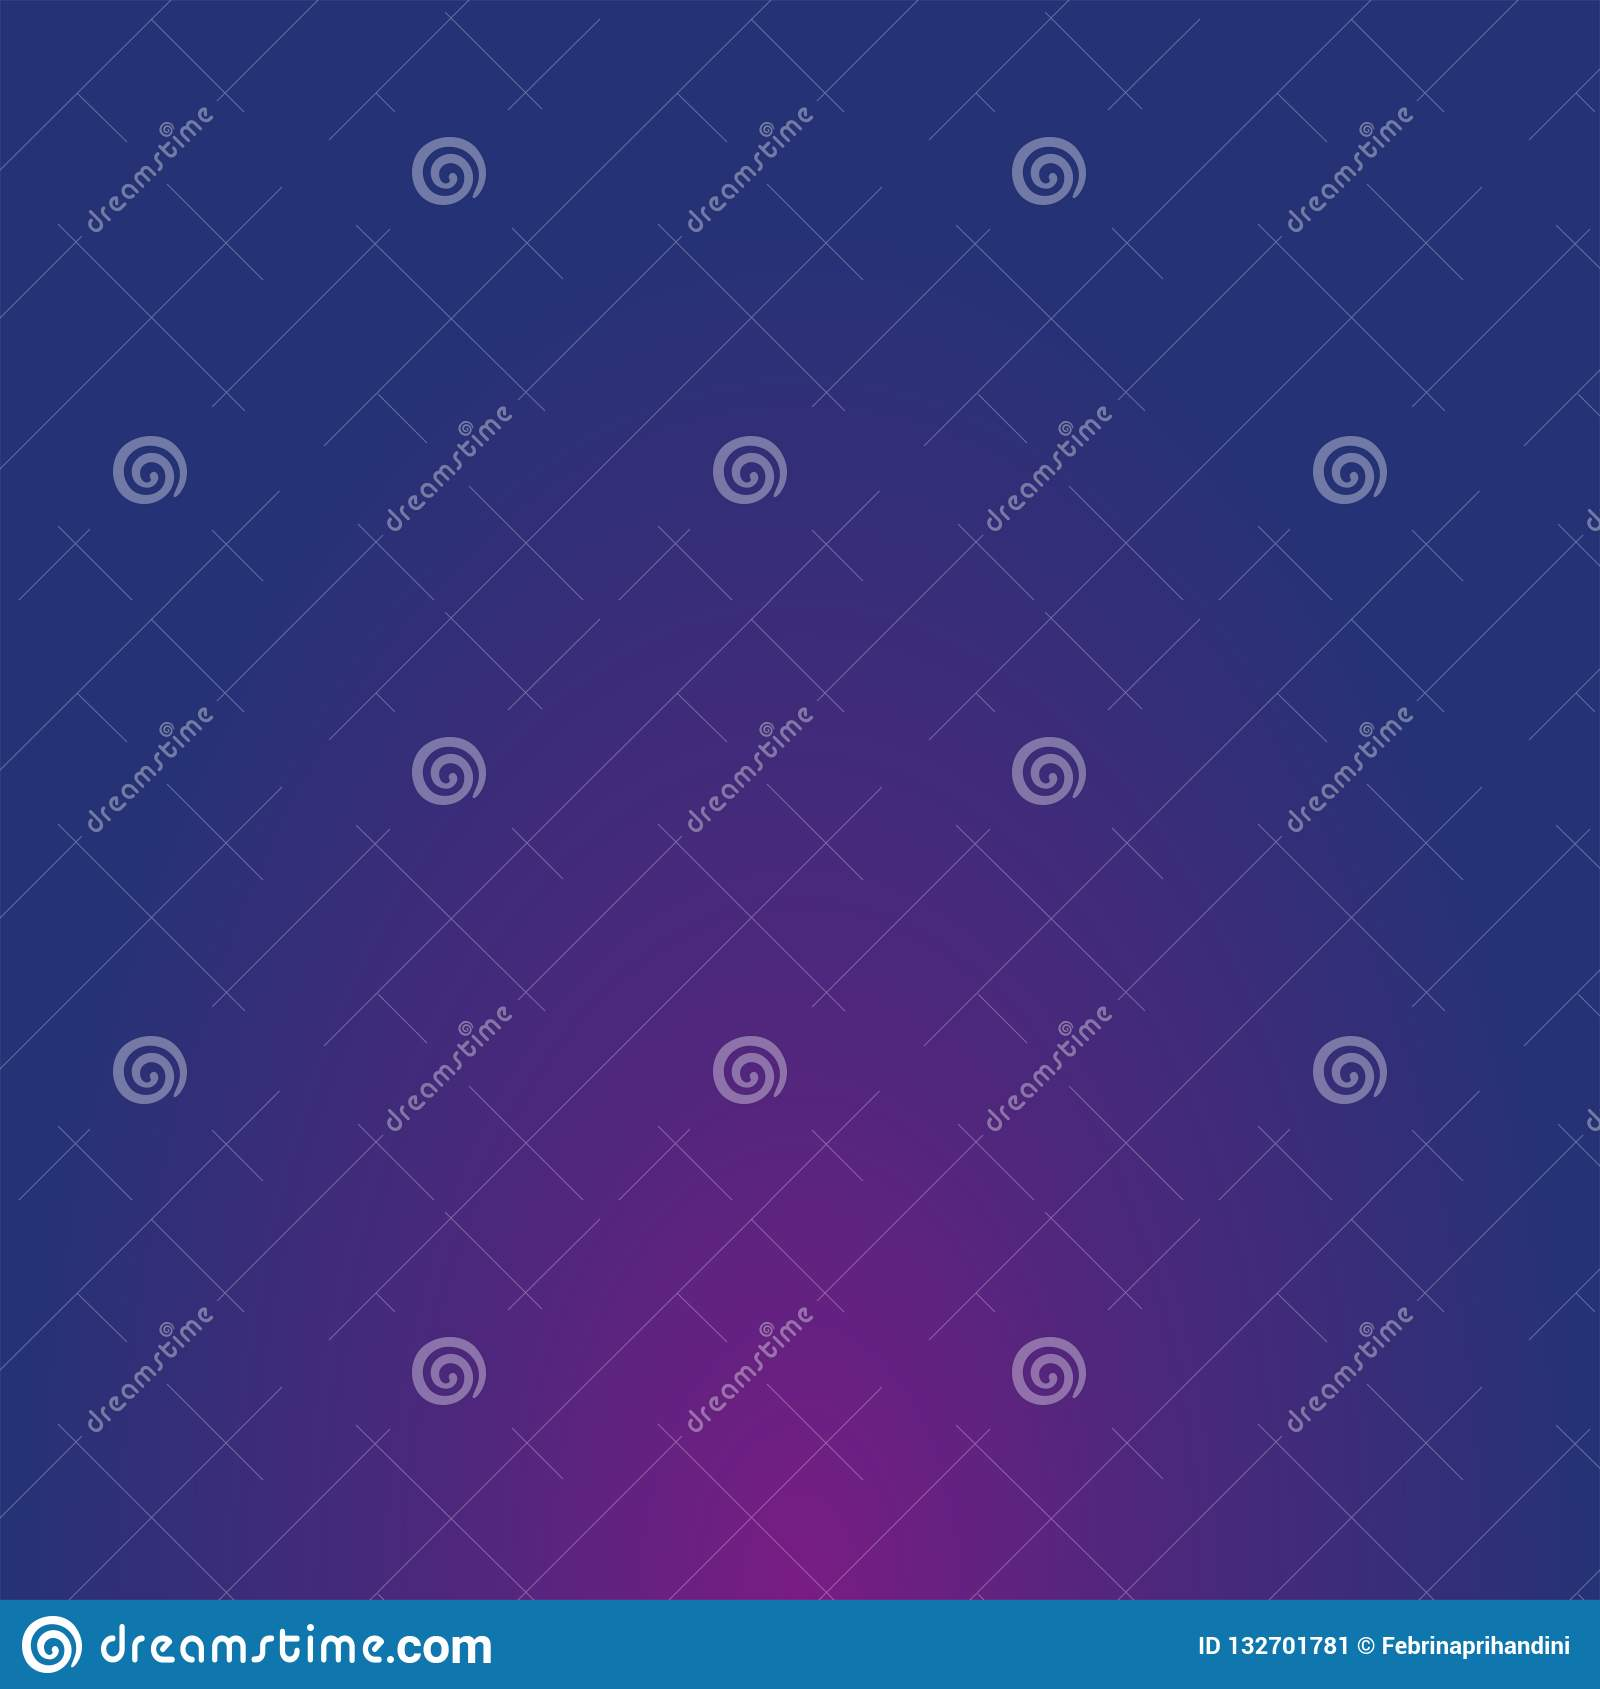 Gradient purple abstract design background